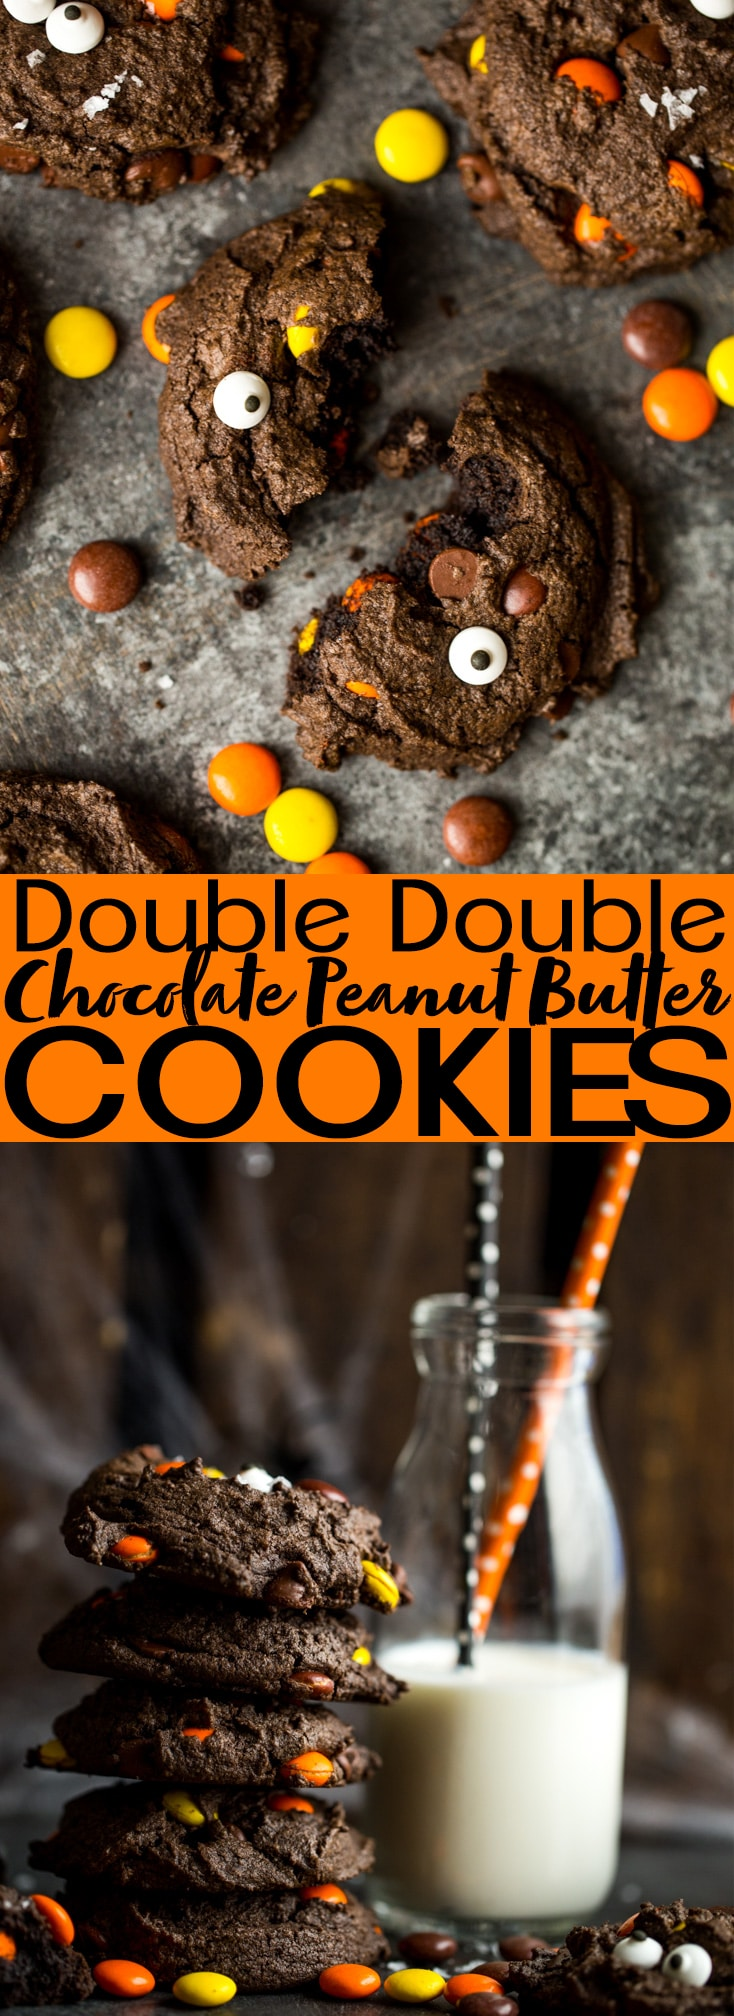 Double Double Chocolate Peanut Butter Cookies | Halloween Cookies | Chocolate Chocolate Chip Cookies | Chocolate and Peanut butter Cookies